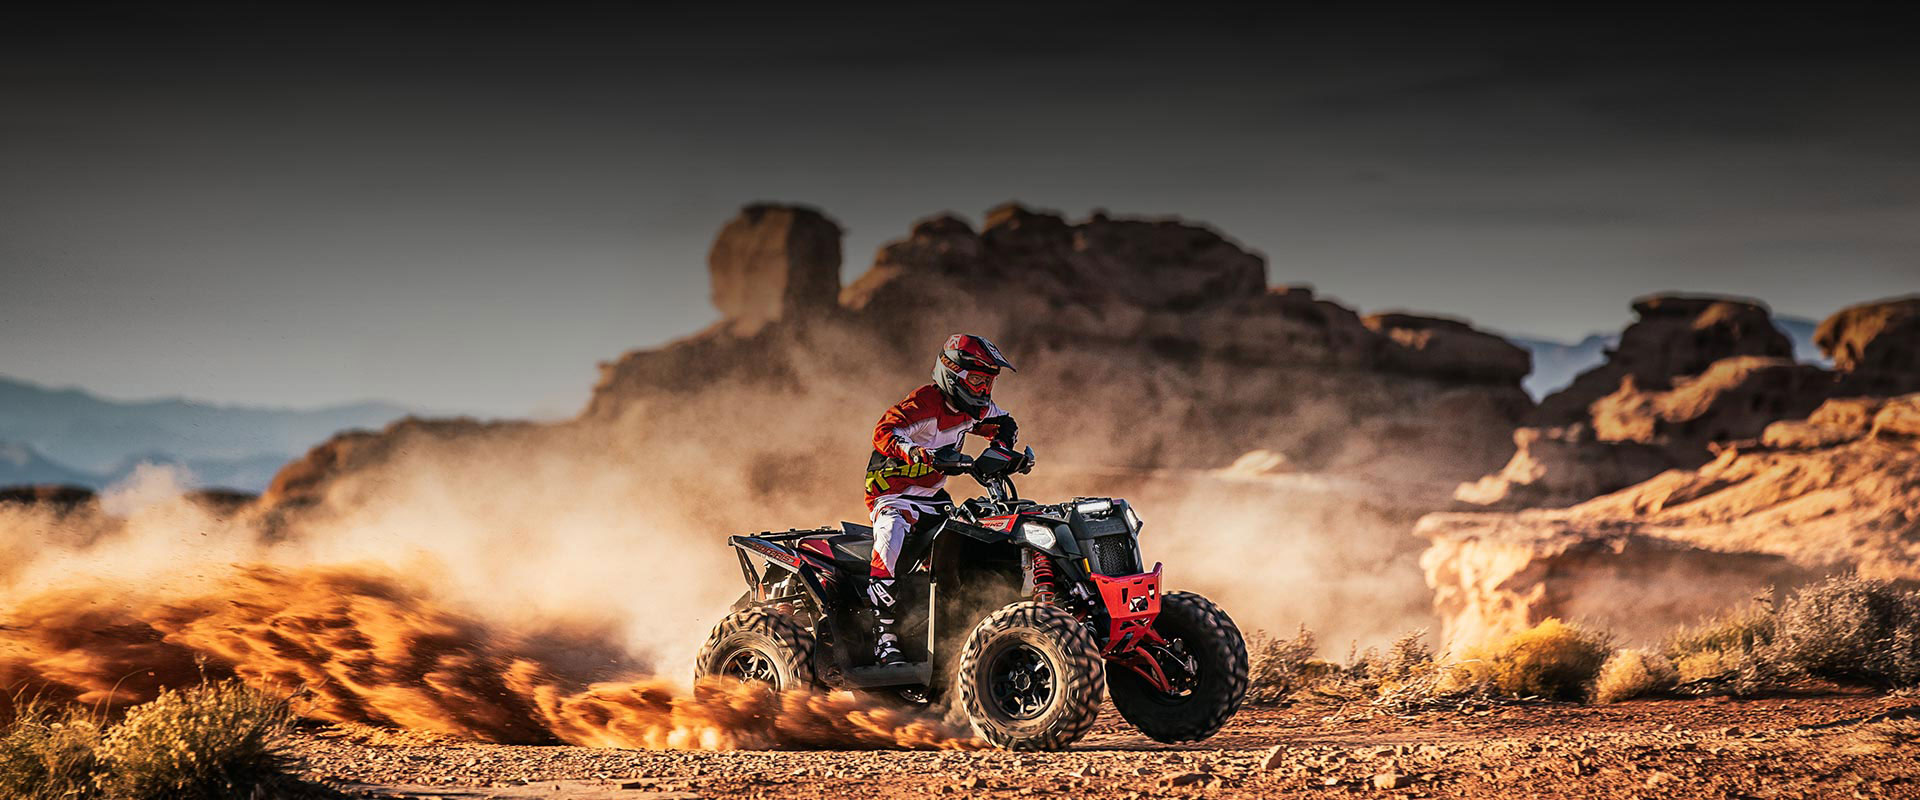 THE WORLD'S BIGGEST, BADDEST ATV